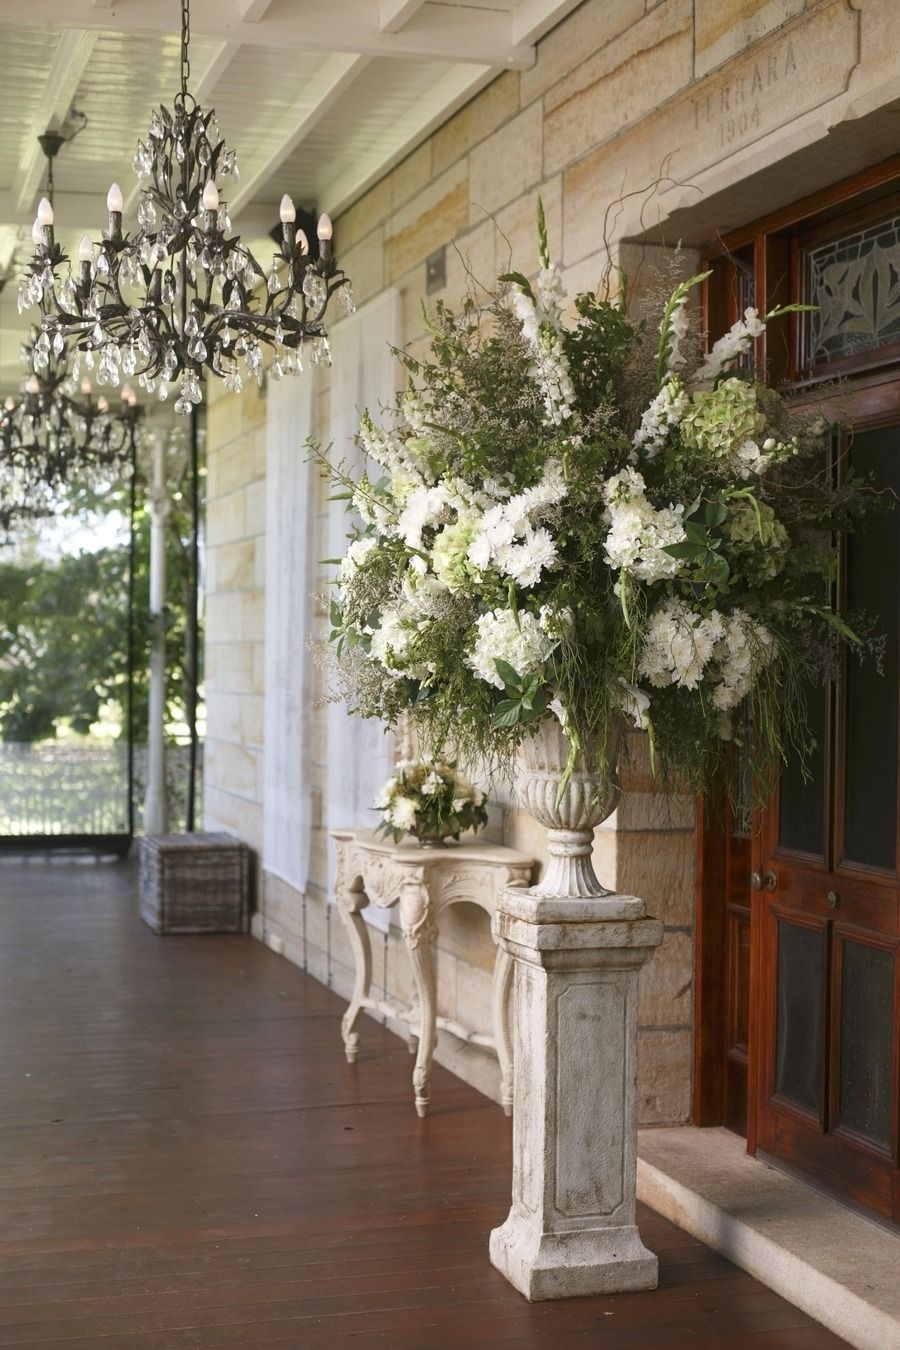 The verandahs terrara house estate wedding from blumenthal